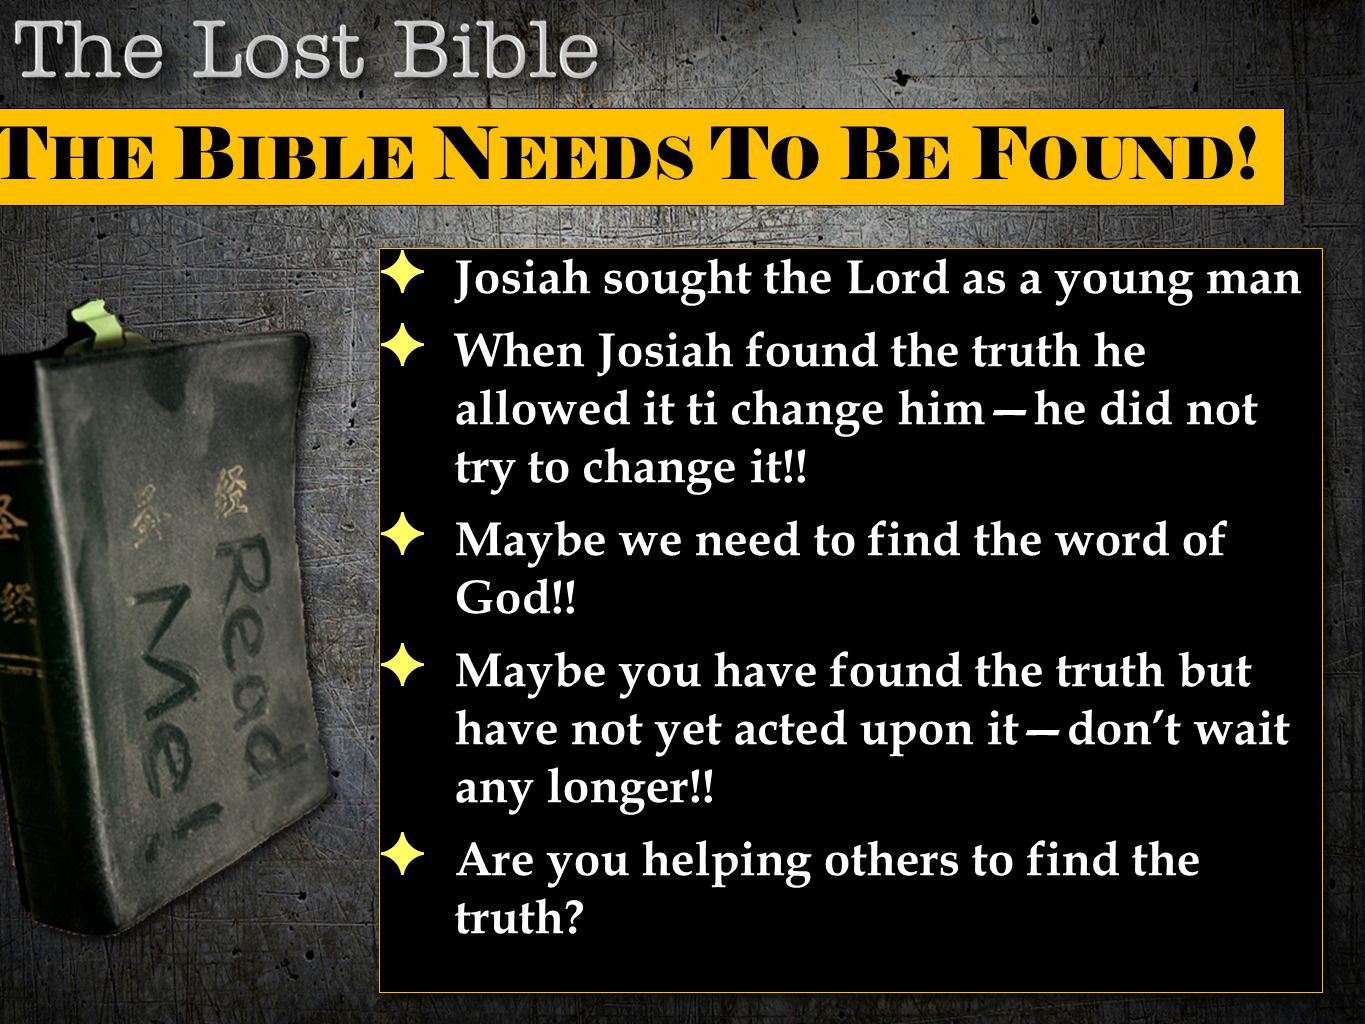 ✦ Josiah sought the Lord as a young man ✦ When Josiah found the truth he allowed it ti change him—he did not try to change it!! ✦ Maybe we need to fin